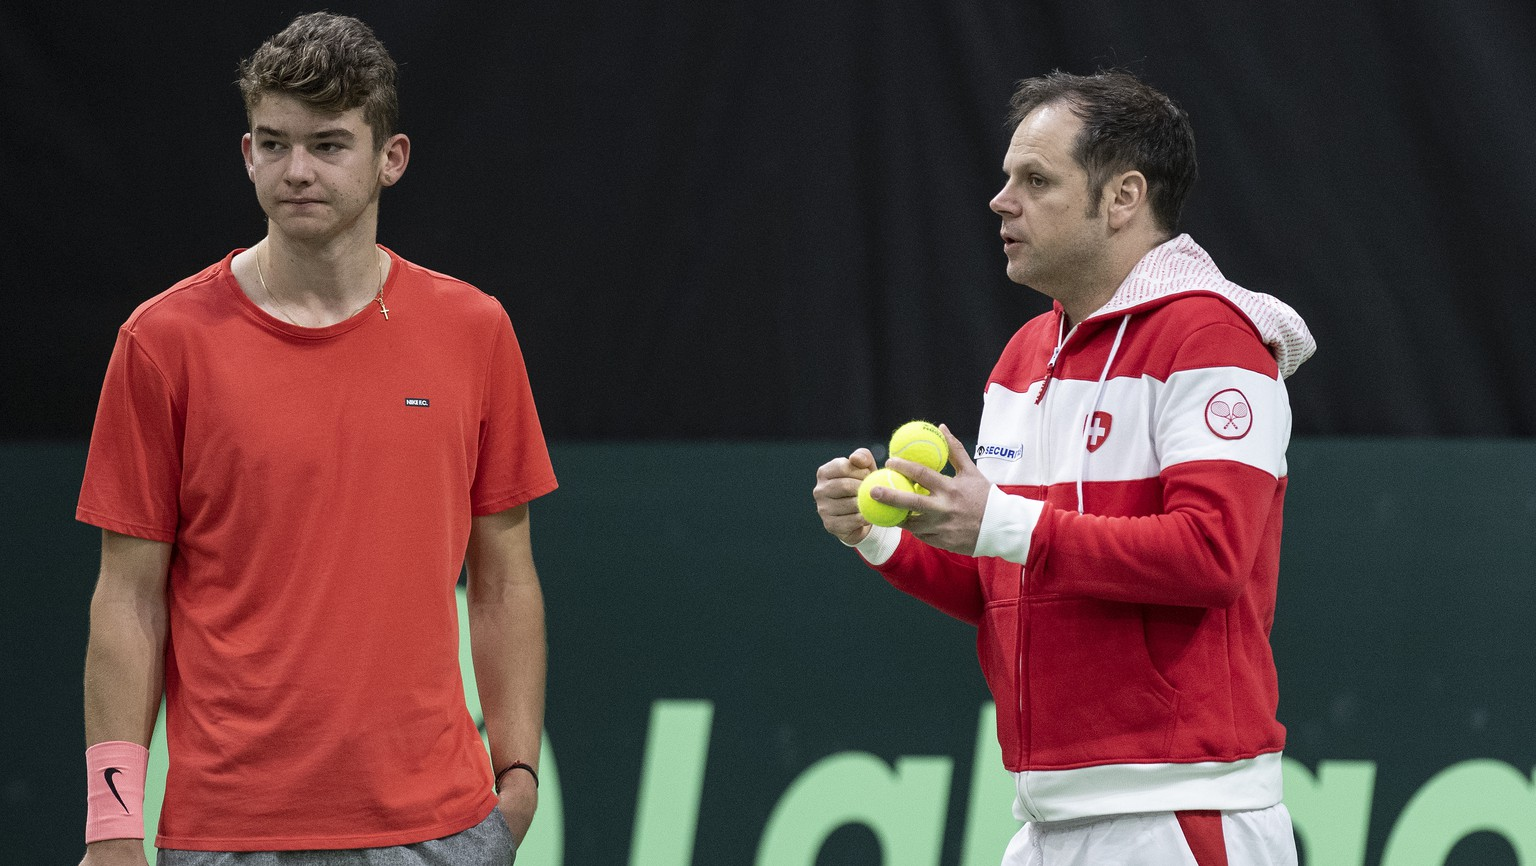 Switzerland's Davis Cup team captain Severin Luethi, right, and his team player Jerome Kym, left, look on during a training session in the Swiss Tennis Arena in Biel, Switzerland, on Thursday, January 31, 2019. Switzerland will be face Russia in the tennis Davis Cup qualification final round. (KEYSTONE/Peter Schneider)